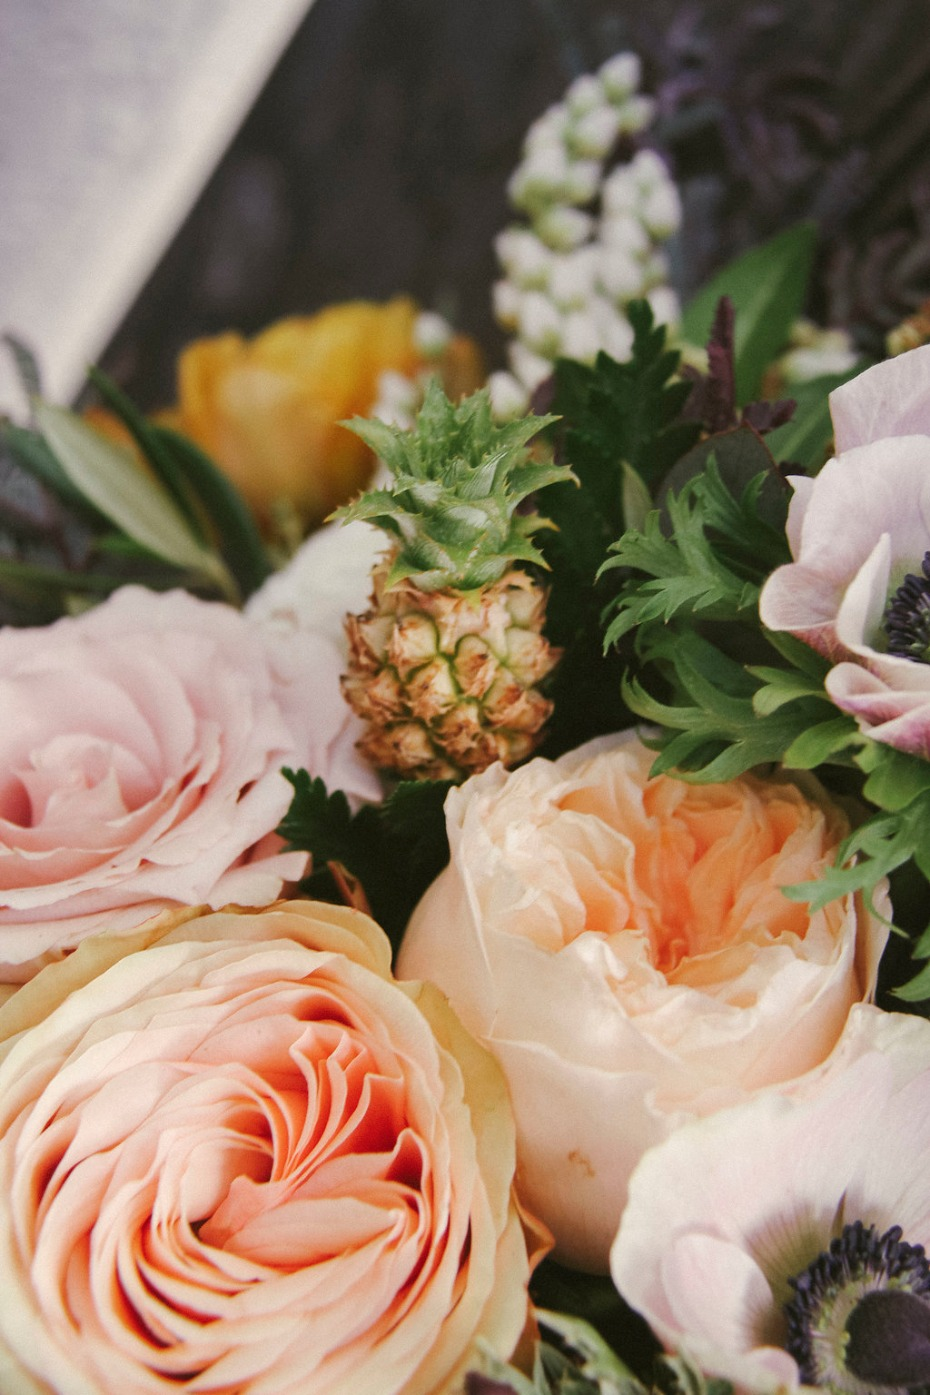 The tiniest pineapple for your bouquet!